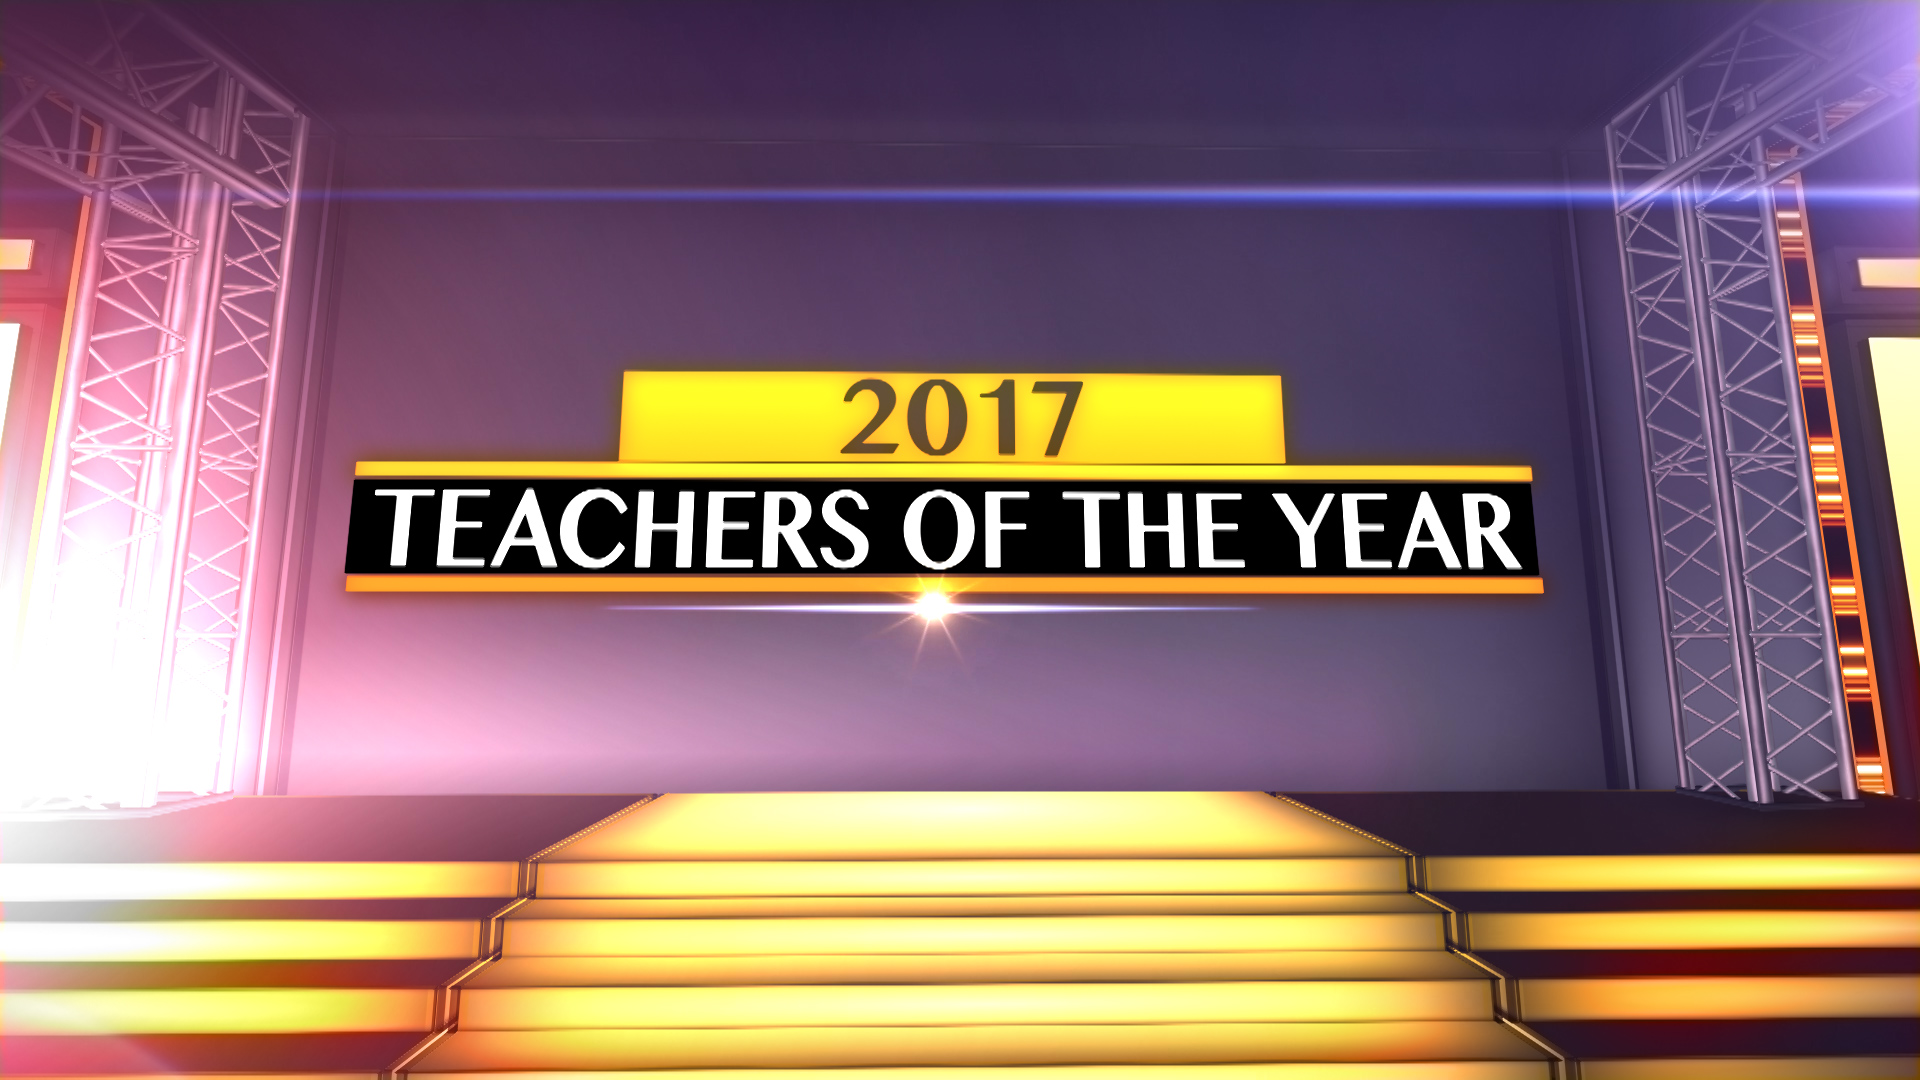 Daviess County Public Schools 2017 Teachers of the Year